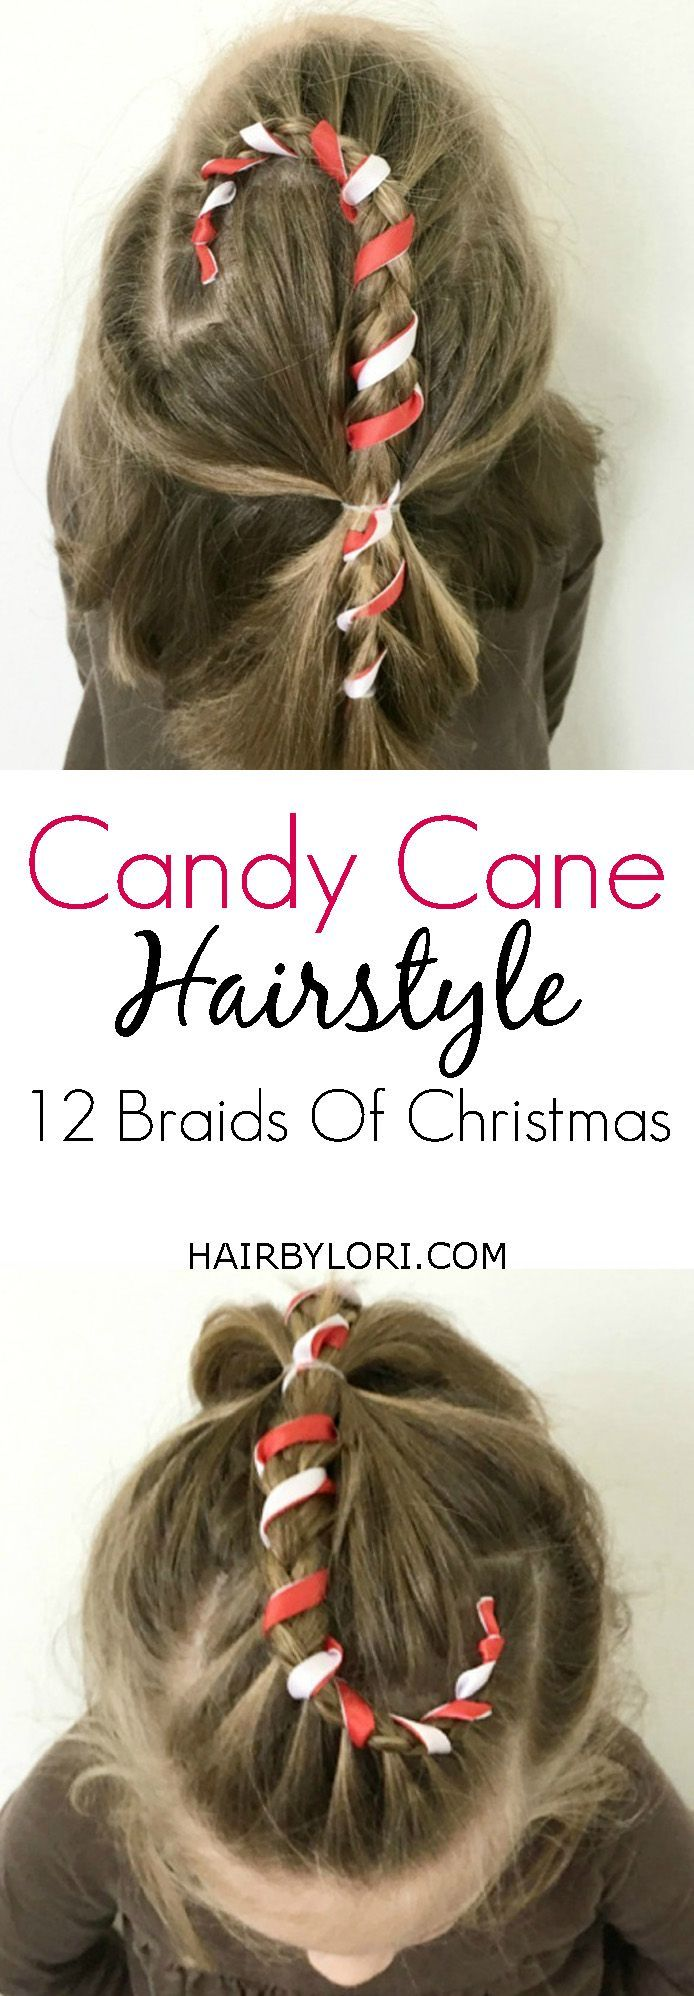 124 best christmas hairstyles images on pinterest | christmas